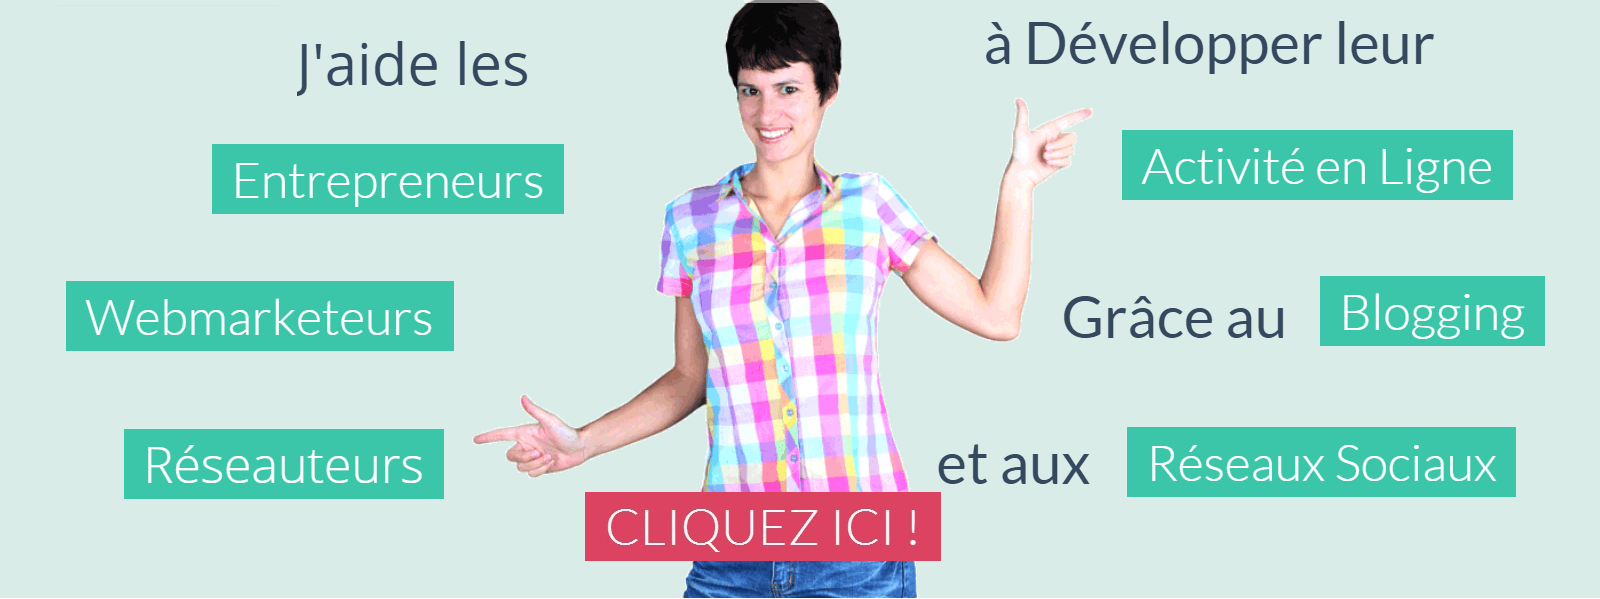 coach MLM marketing de réseau formation blogging webmarketing relationnel